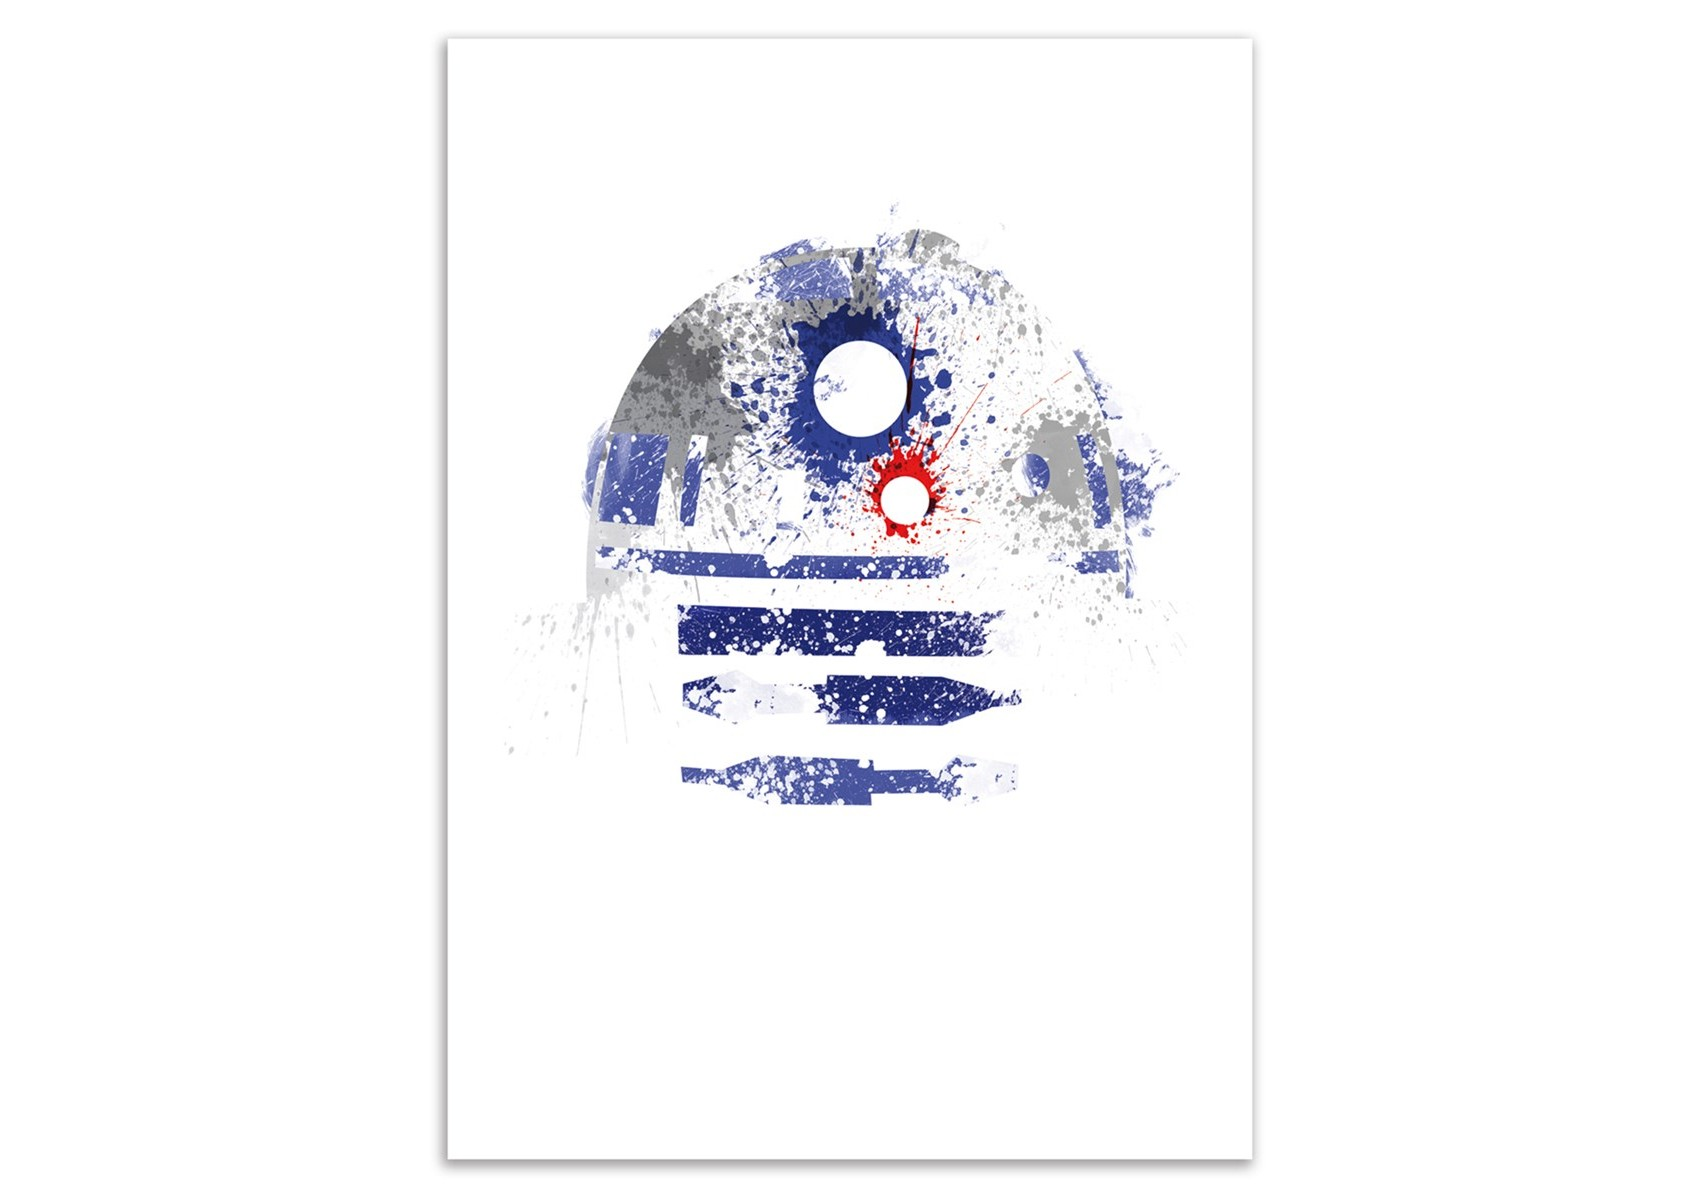 poster r2d2 de star wars astromech deetoo arian noveir 50 x 70 cm. Black Bedroom Furniture Sets. Home Design Ideas